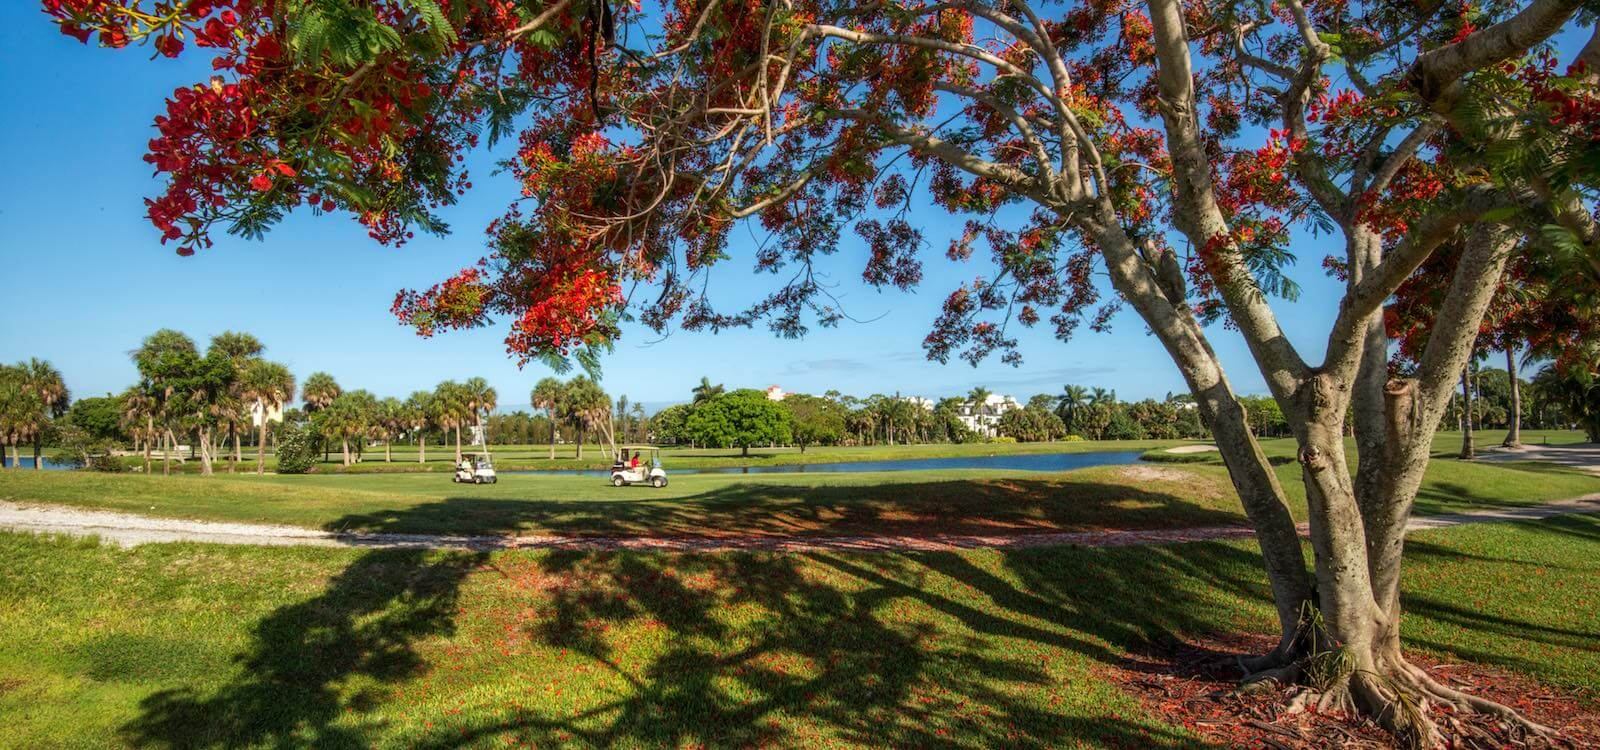 MustDo.com | The Naples Beach Hotel & Golf Club, Naples Florida. Photo by Jennifer Brinkman.